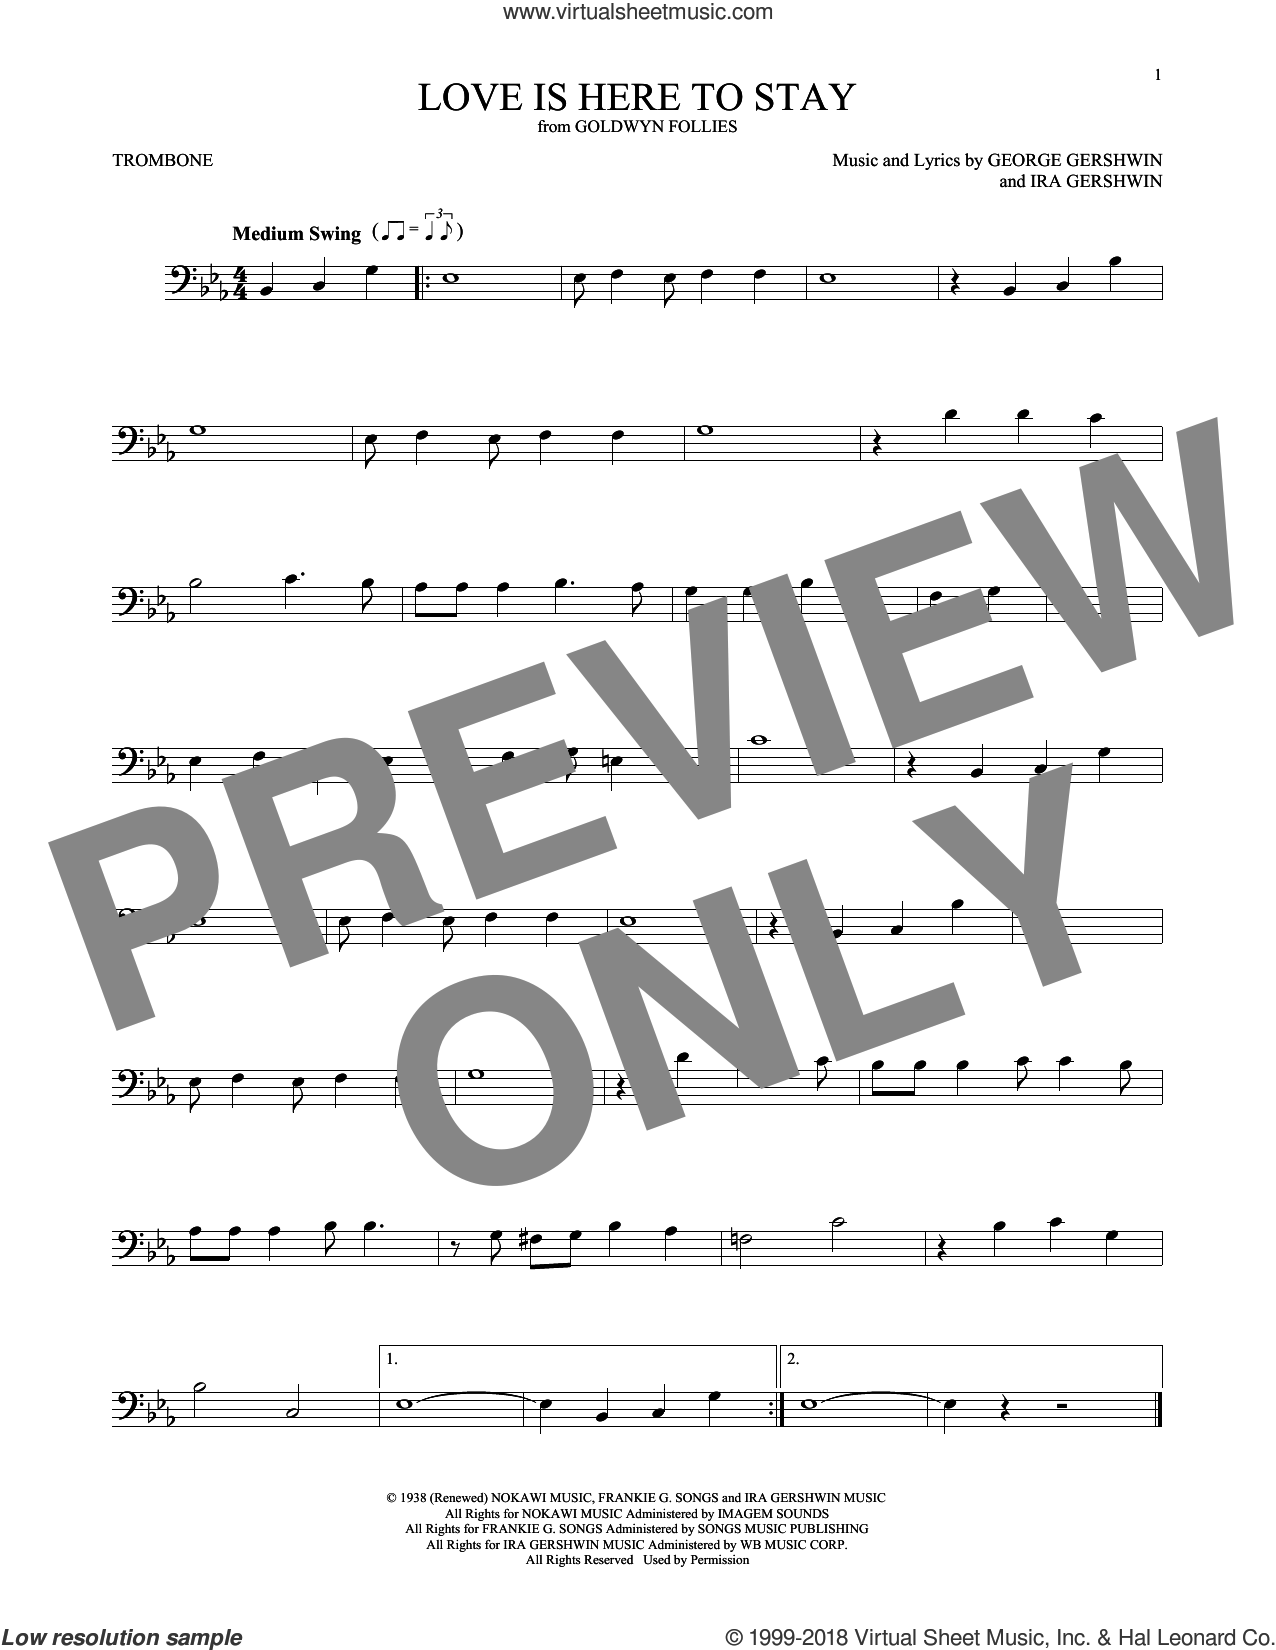 Love Is Here To Stay sheet music for trombone solo by Ira Gershwin and George Gershwin, intermediate. Score Image Preview.